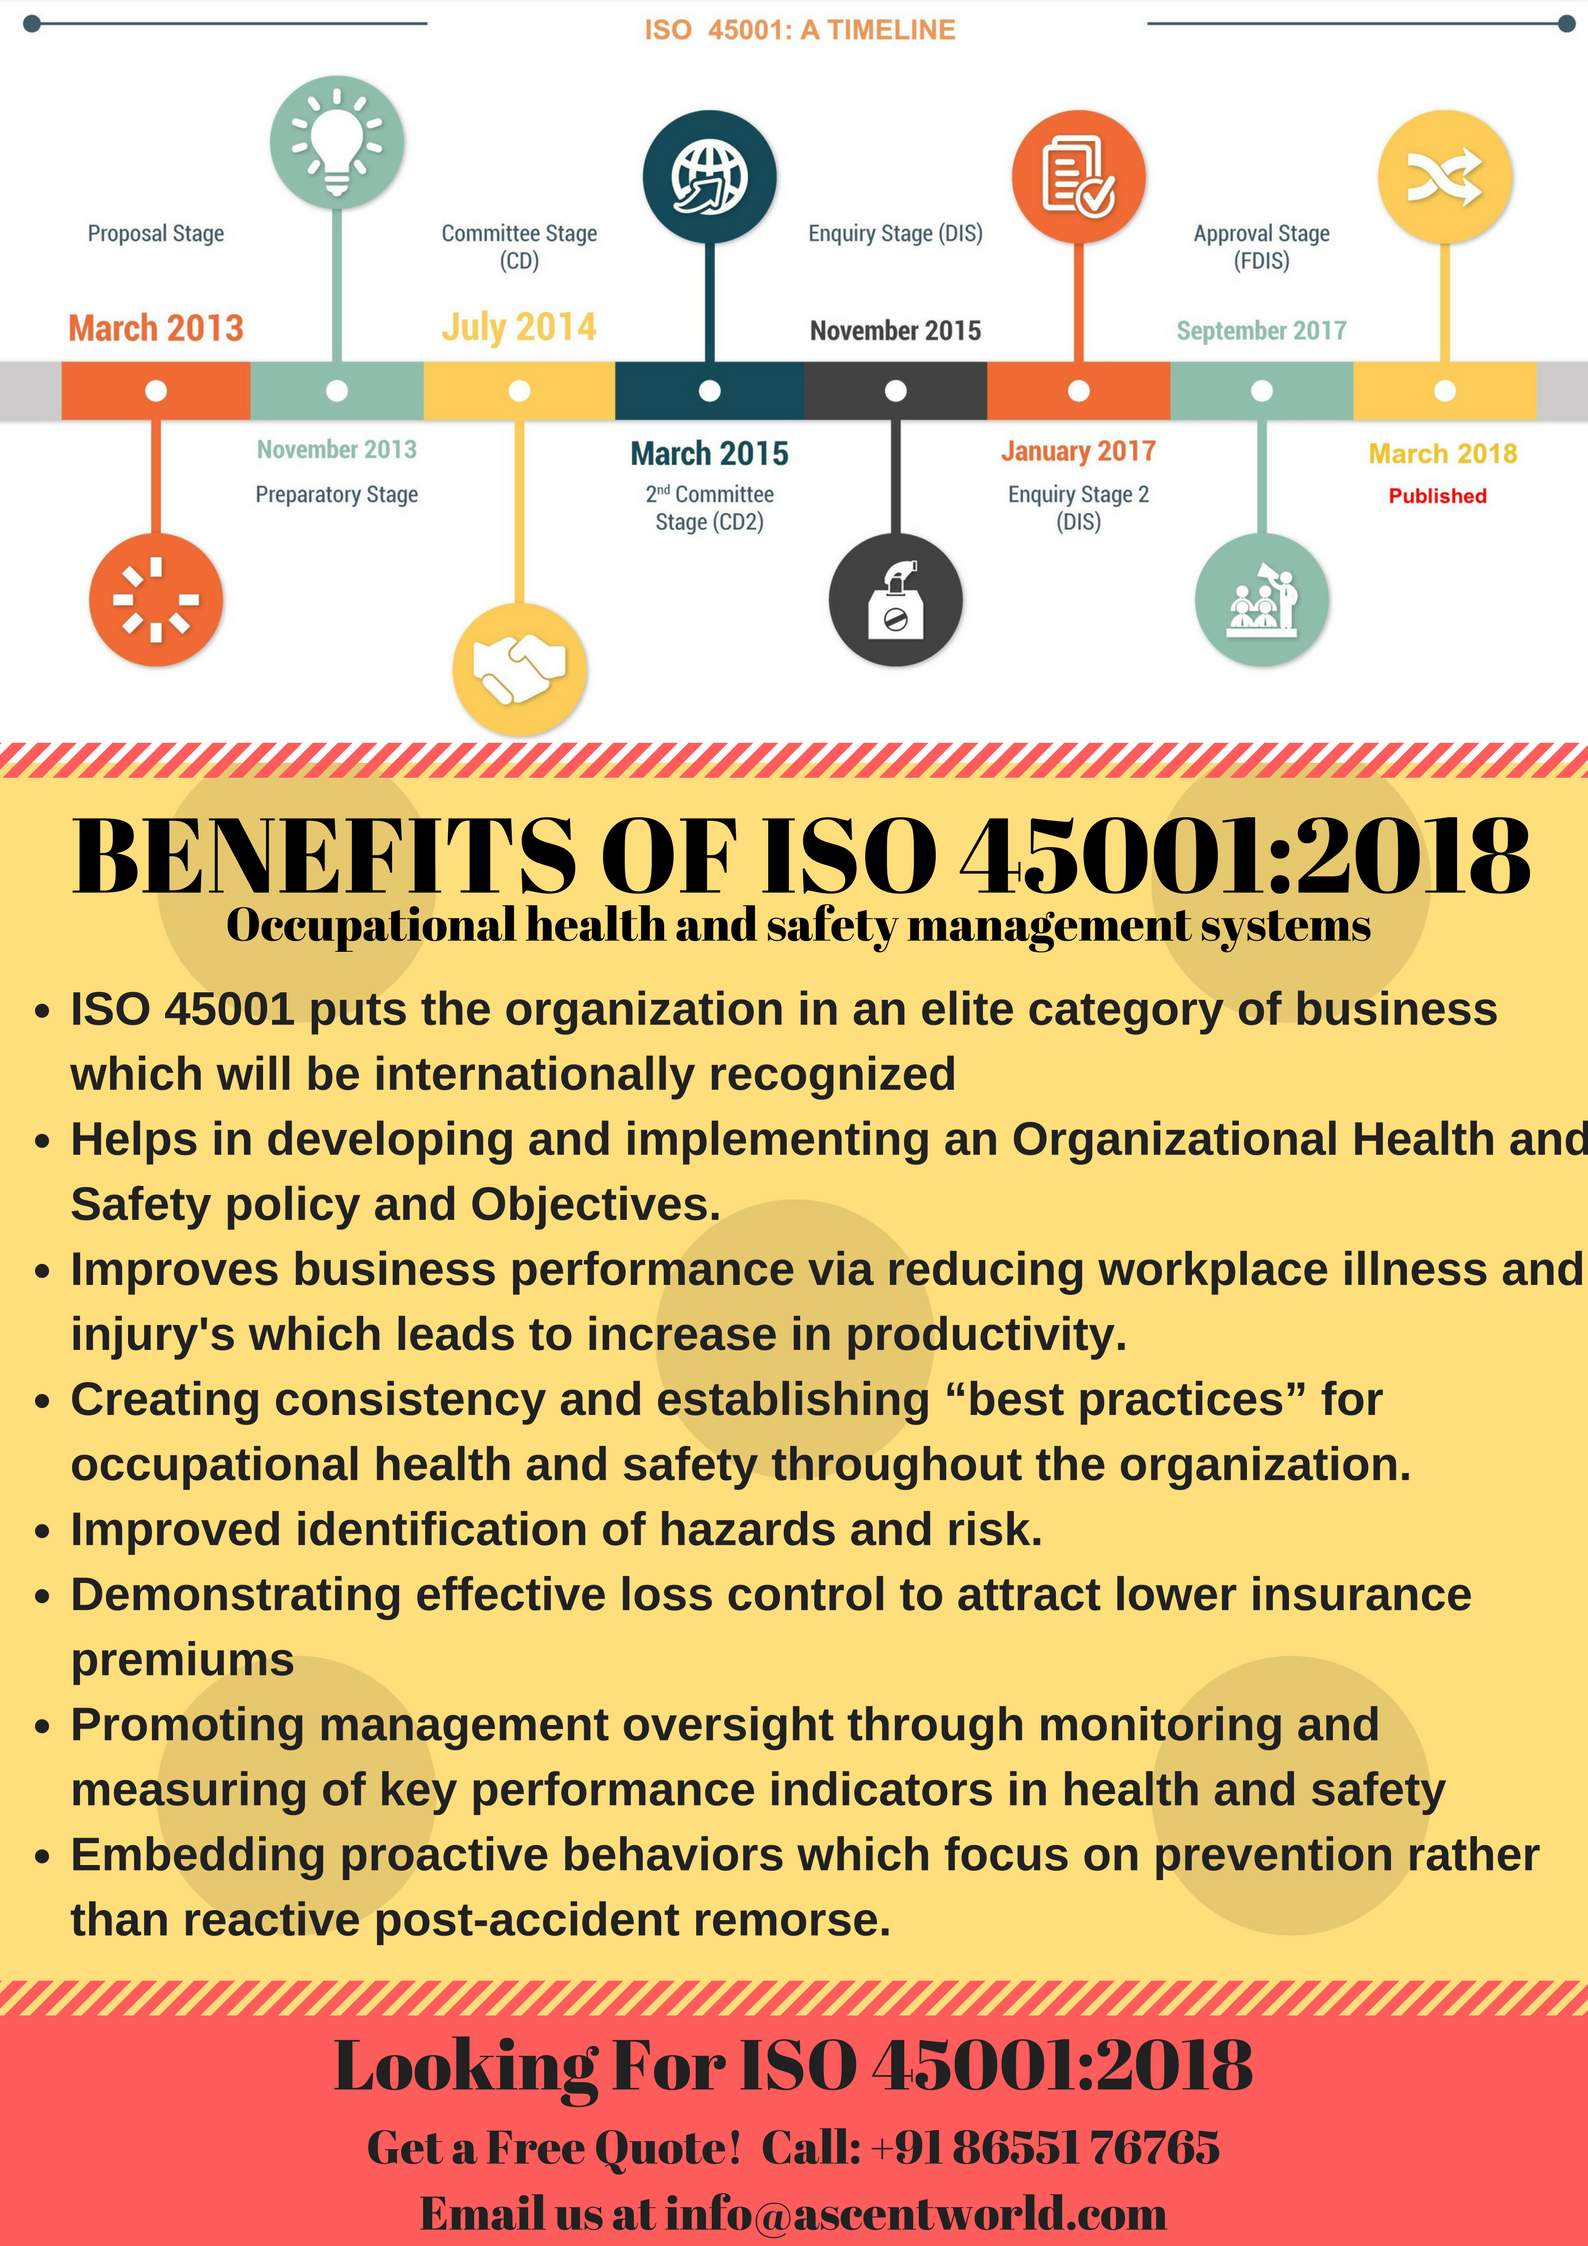 Benefits of ISO450012018 Occupational health and safety